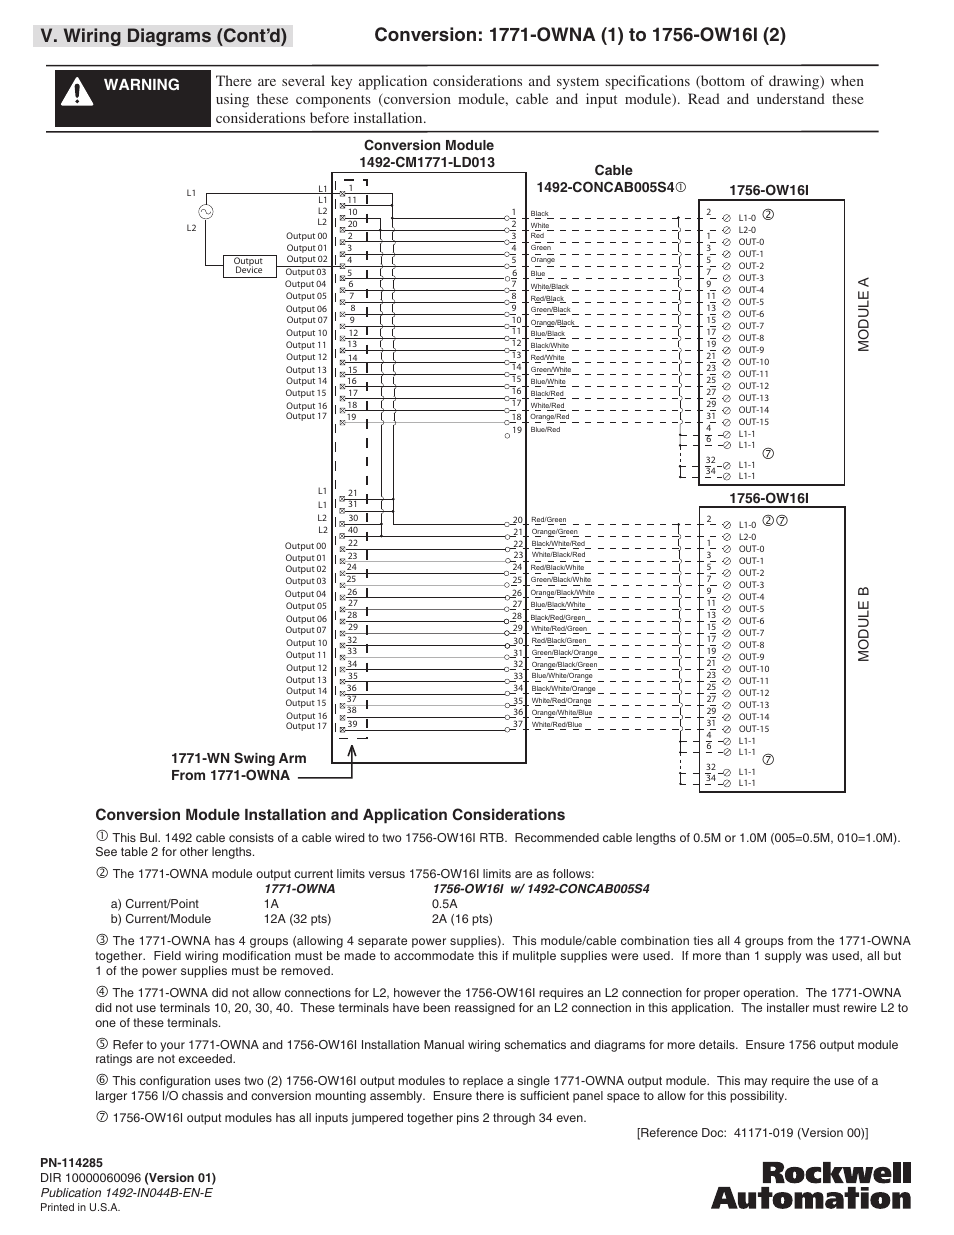 V. wiring diagrams (cont'd) | Rockwell Automation 1492-CM1771-